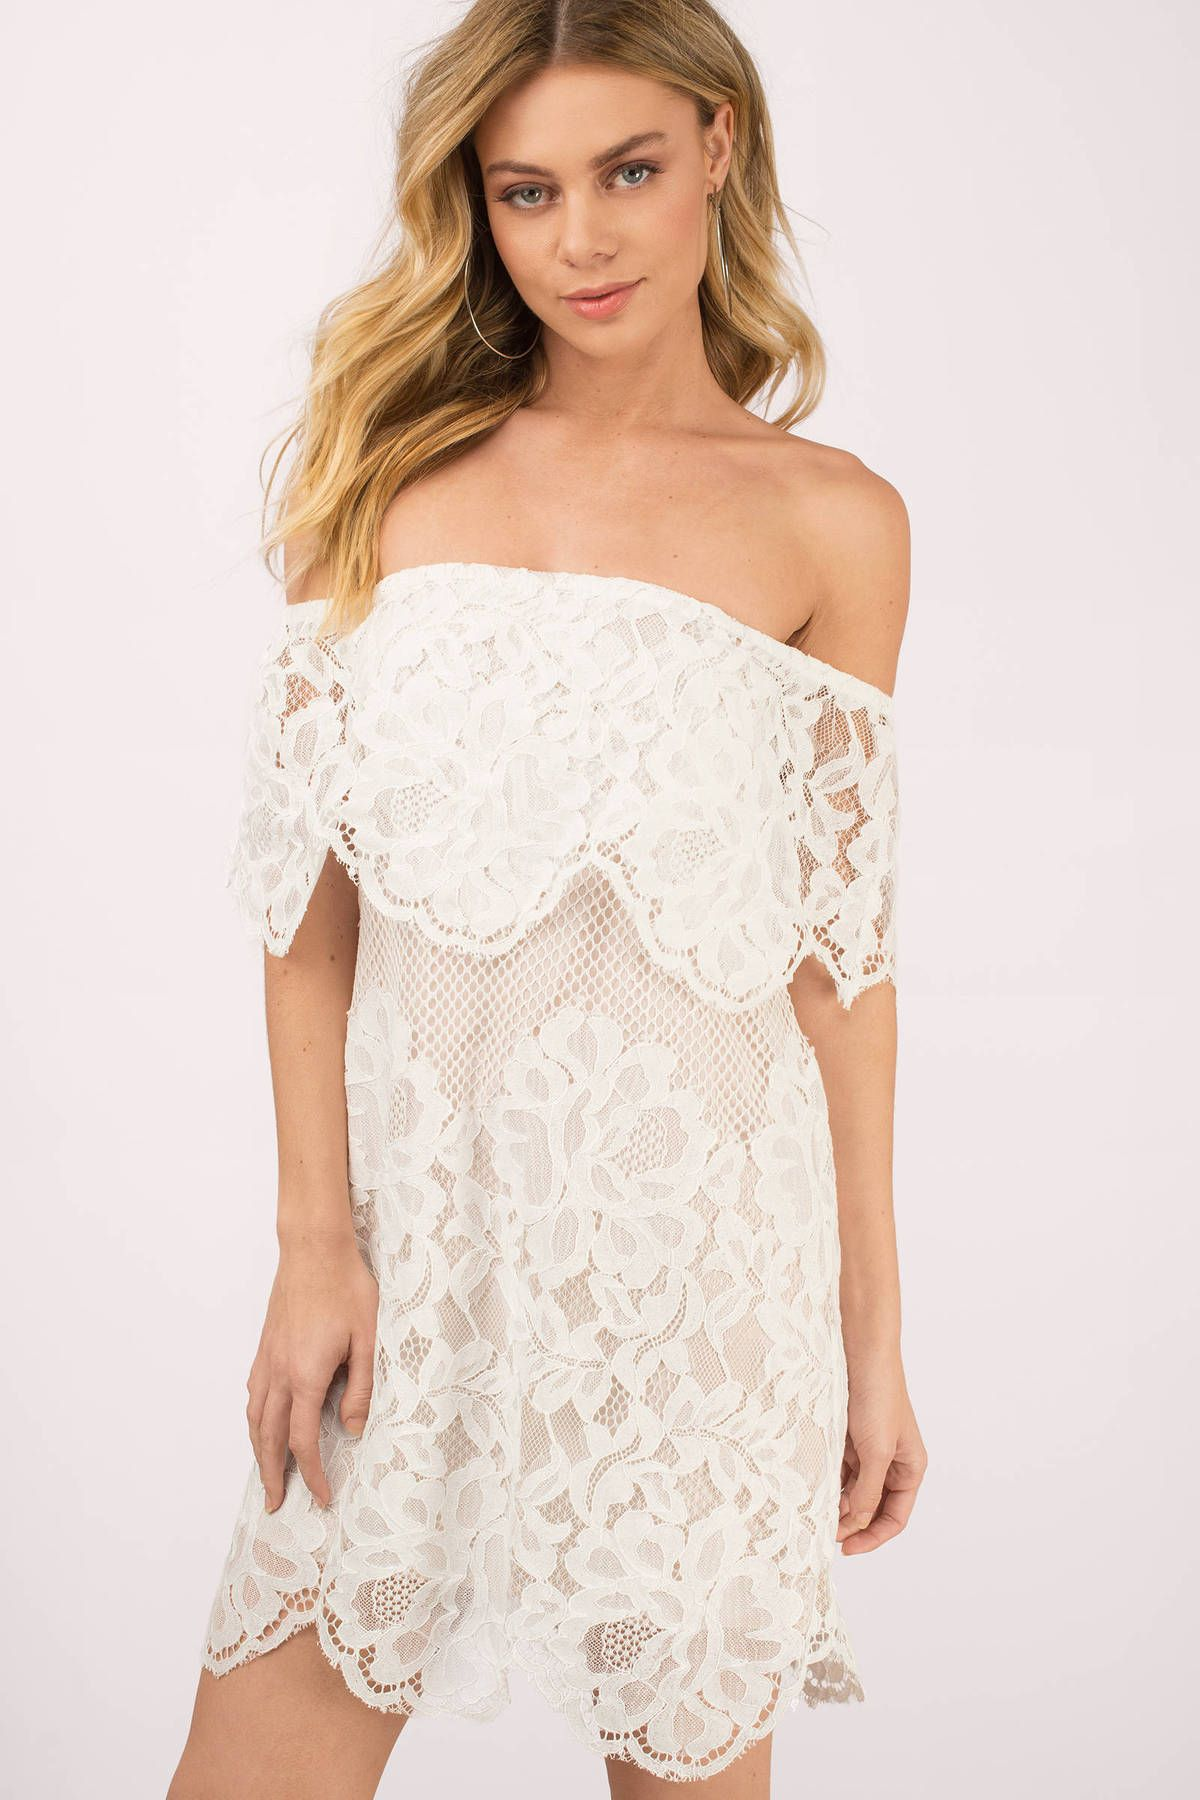 Play For Keeps Lace Shift Dress In White Lace White Dress Lace Shift Dress Women S Fashion Dresses [ 1800 x 1200 Pixel ]